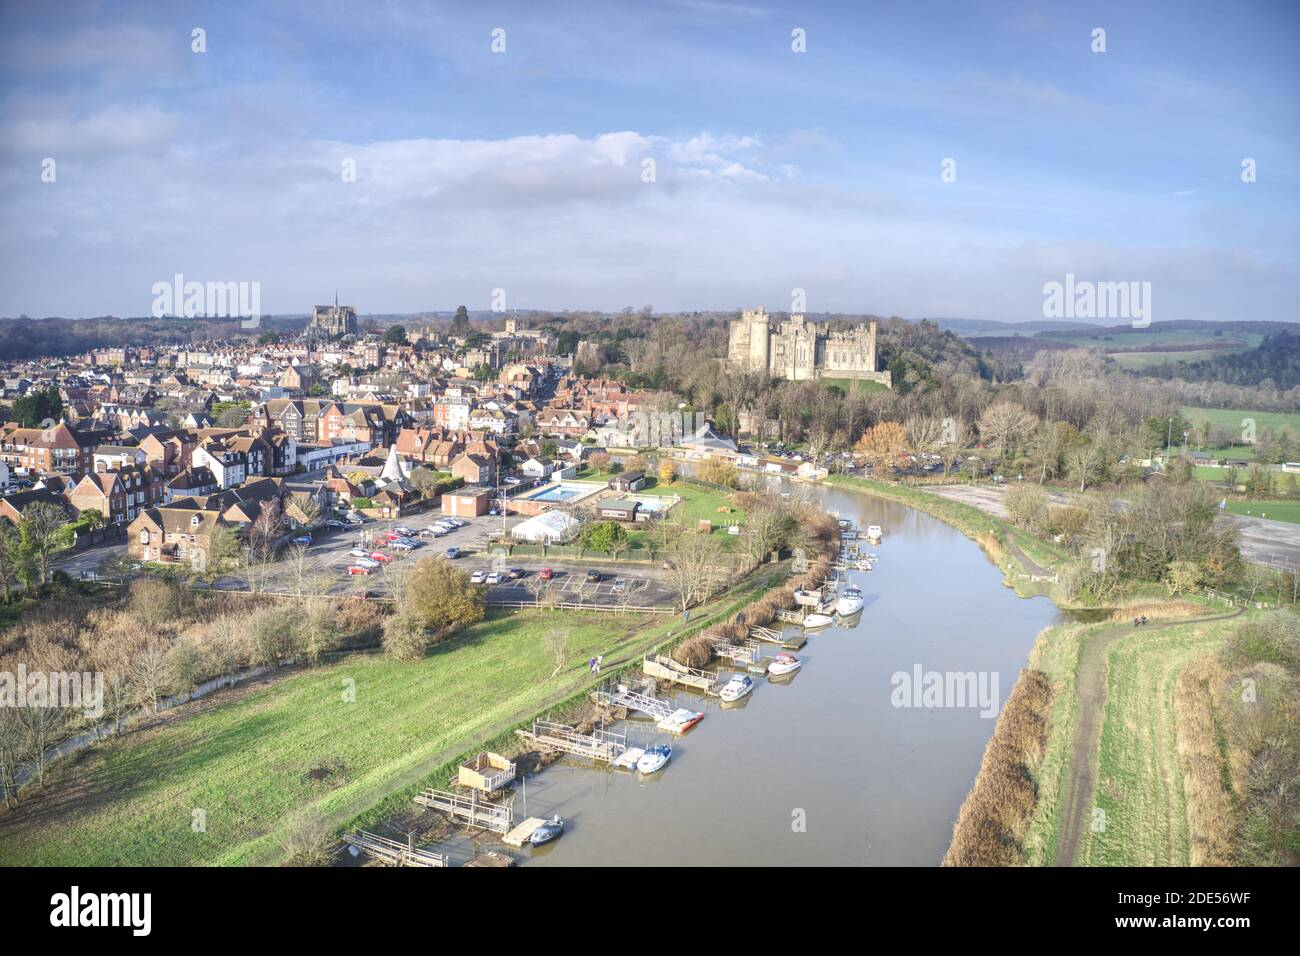 Aerial photo of the historic town of Arundel with the castle and cathedral in view. Stock Photo